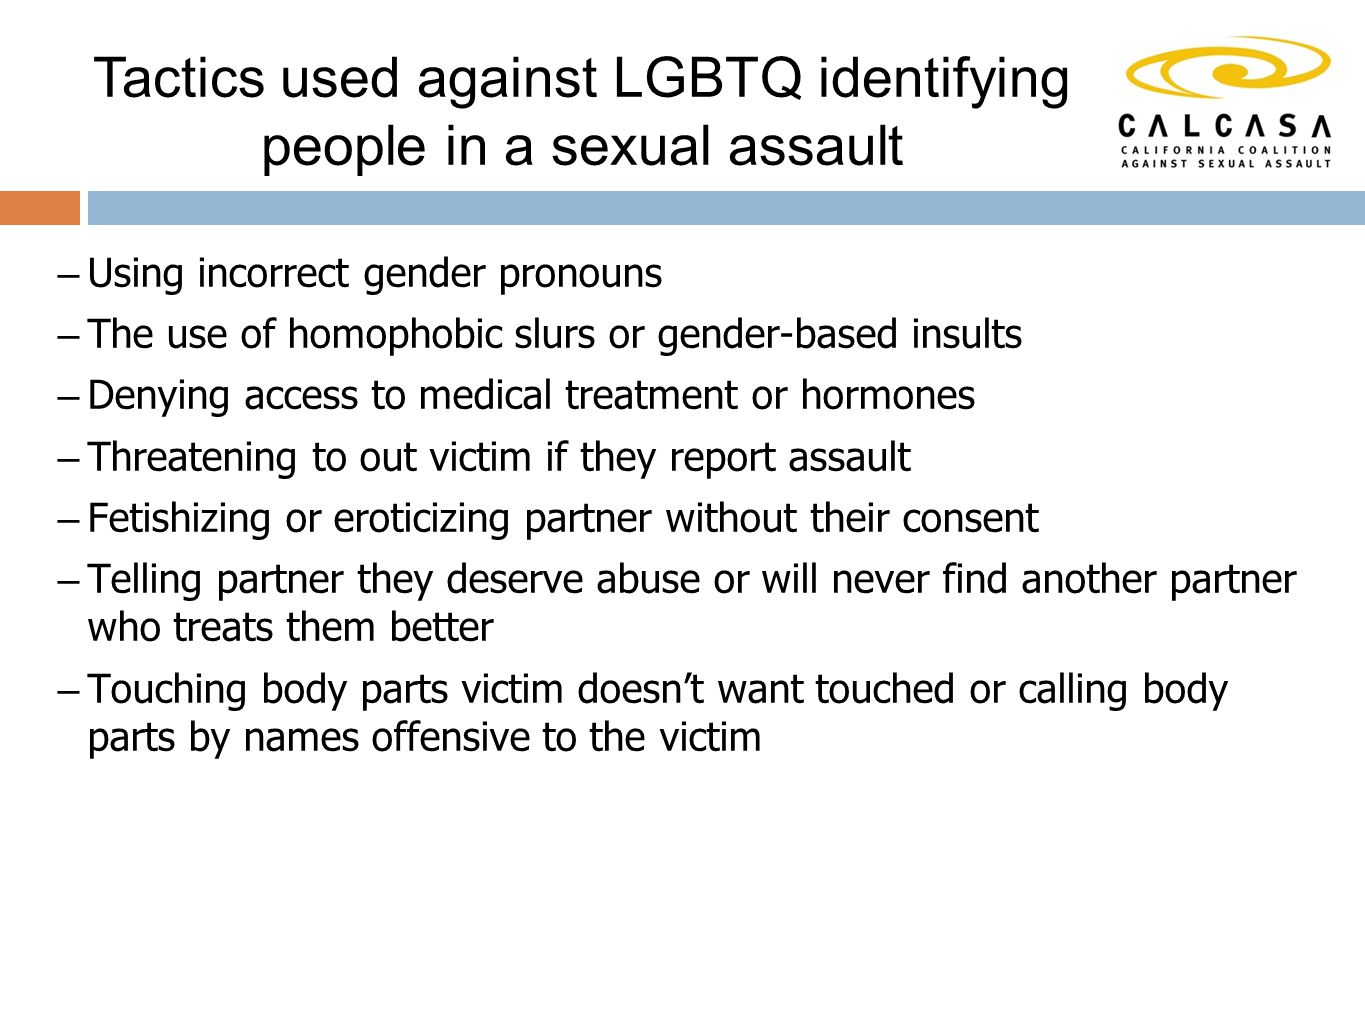 – Using incorrect gender pronouns – The use of homophobic slurs or gender-based insults – Denying access to medical treatment or hormones – Threatening to out victim if they report assault – Fetishizing or eroticizing partner without their consent – Telling partner they deserve abuse or will never find another partner who treats them better – Touching body parts victim doesn't want touched or calling body parts by names offensive to the victim Tactics used against LGBTQ identifying people in a sexual assault